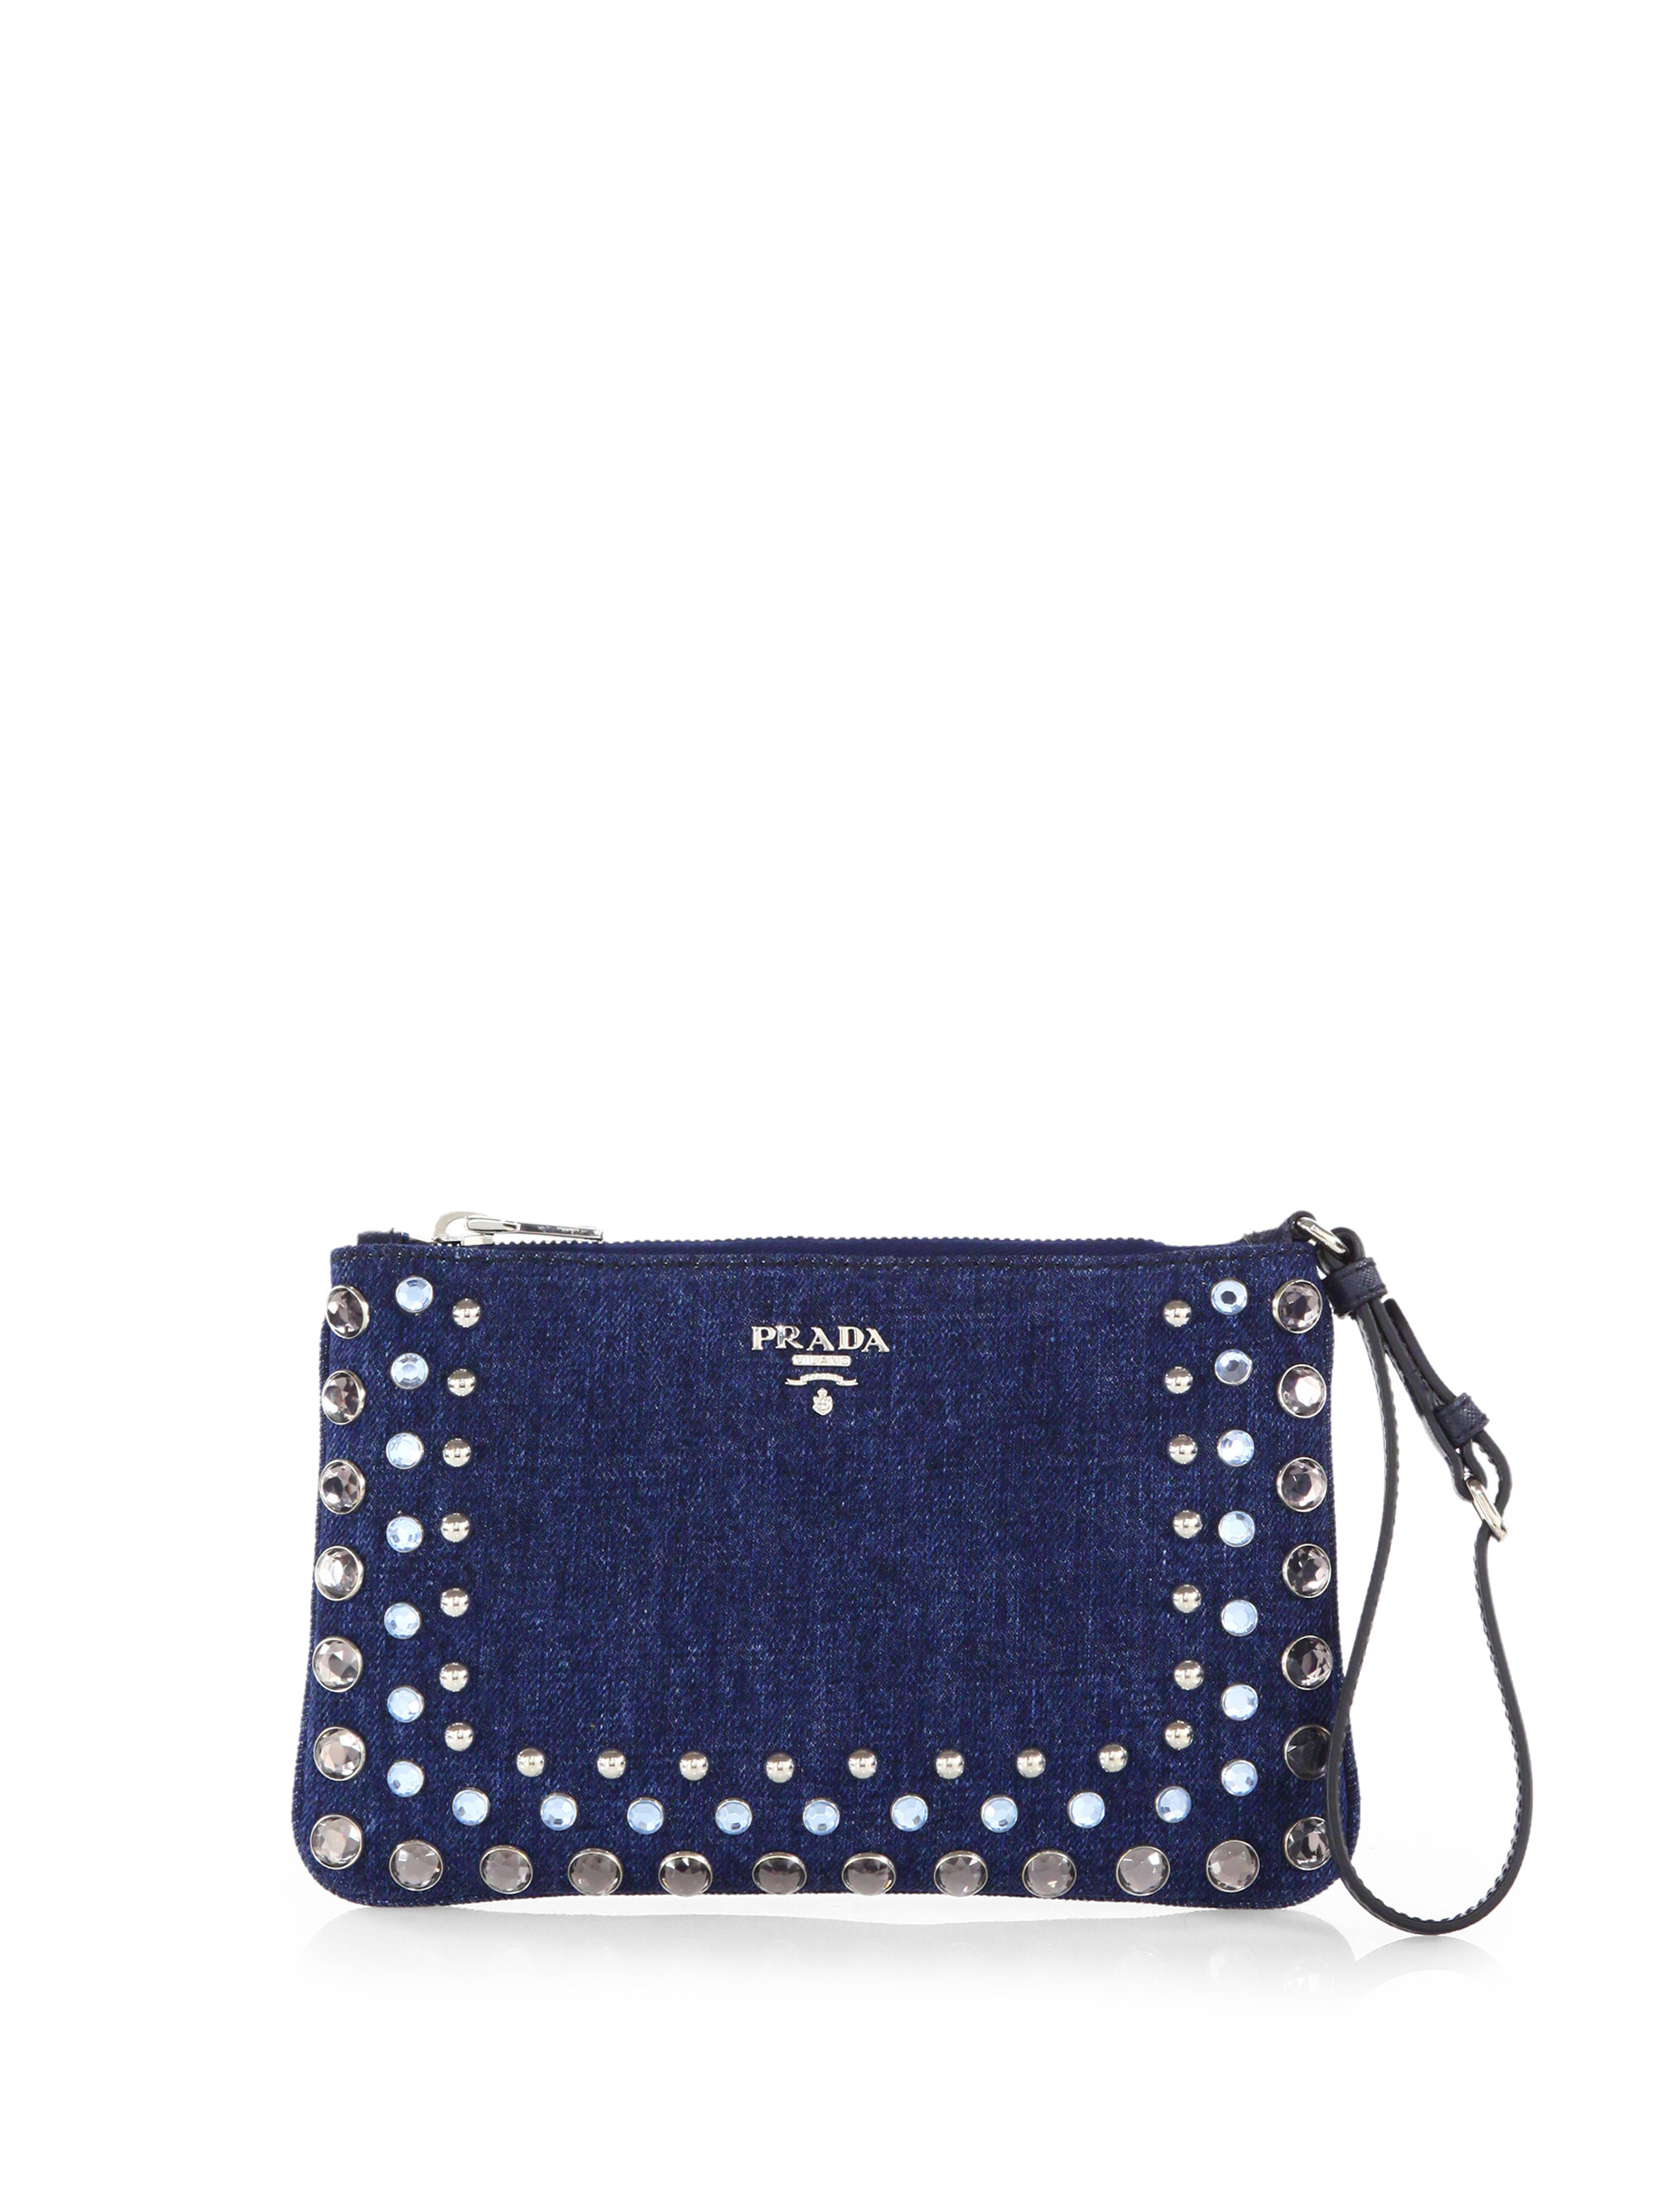 Prada Studded Denim Clutch in Blue (AVIO-BLUE) | Lyst